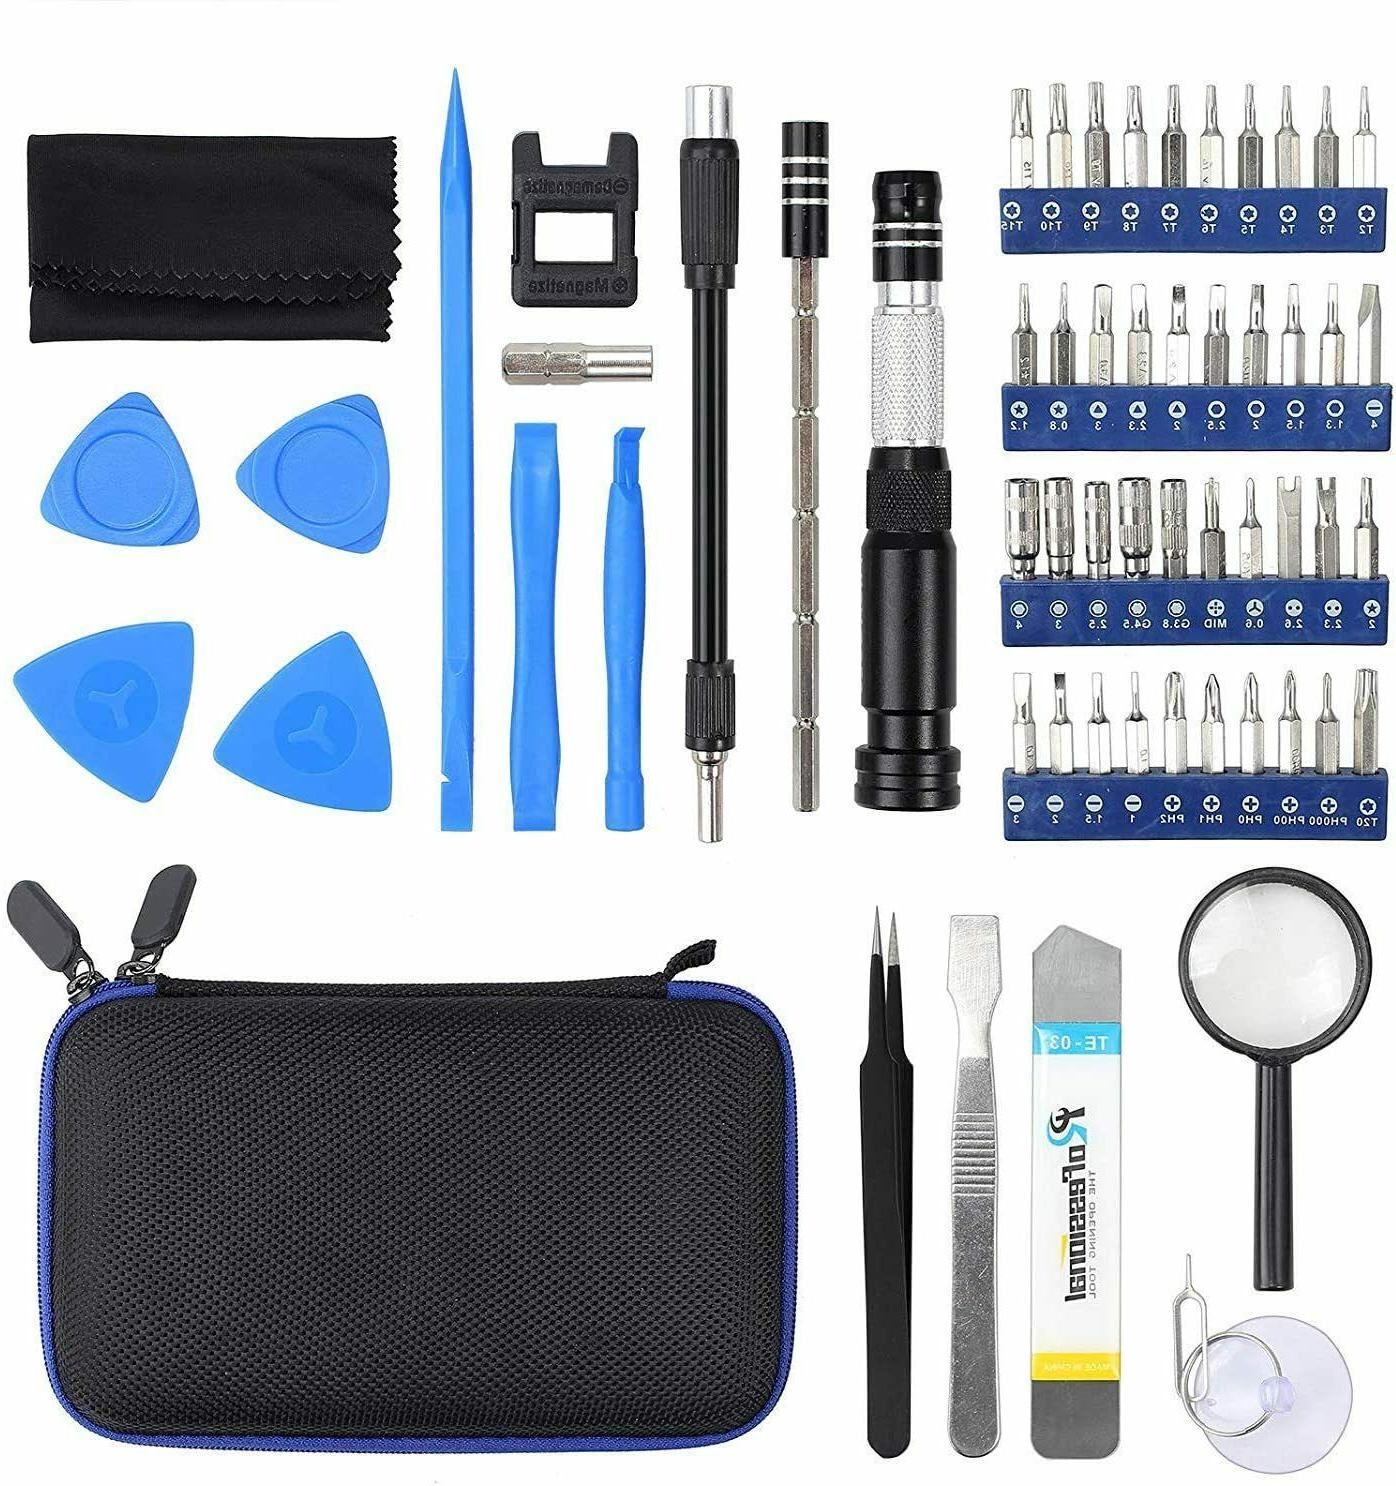 Precision iPhone Micro Kit Cell